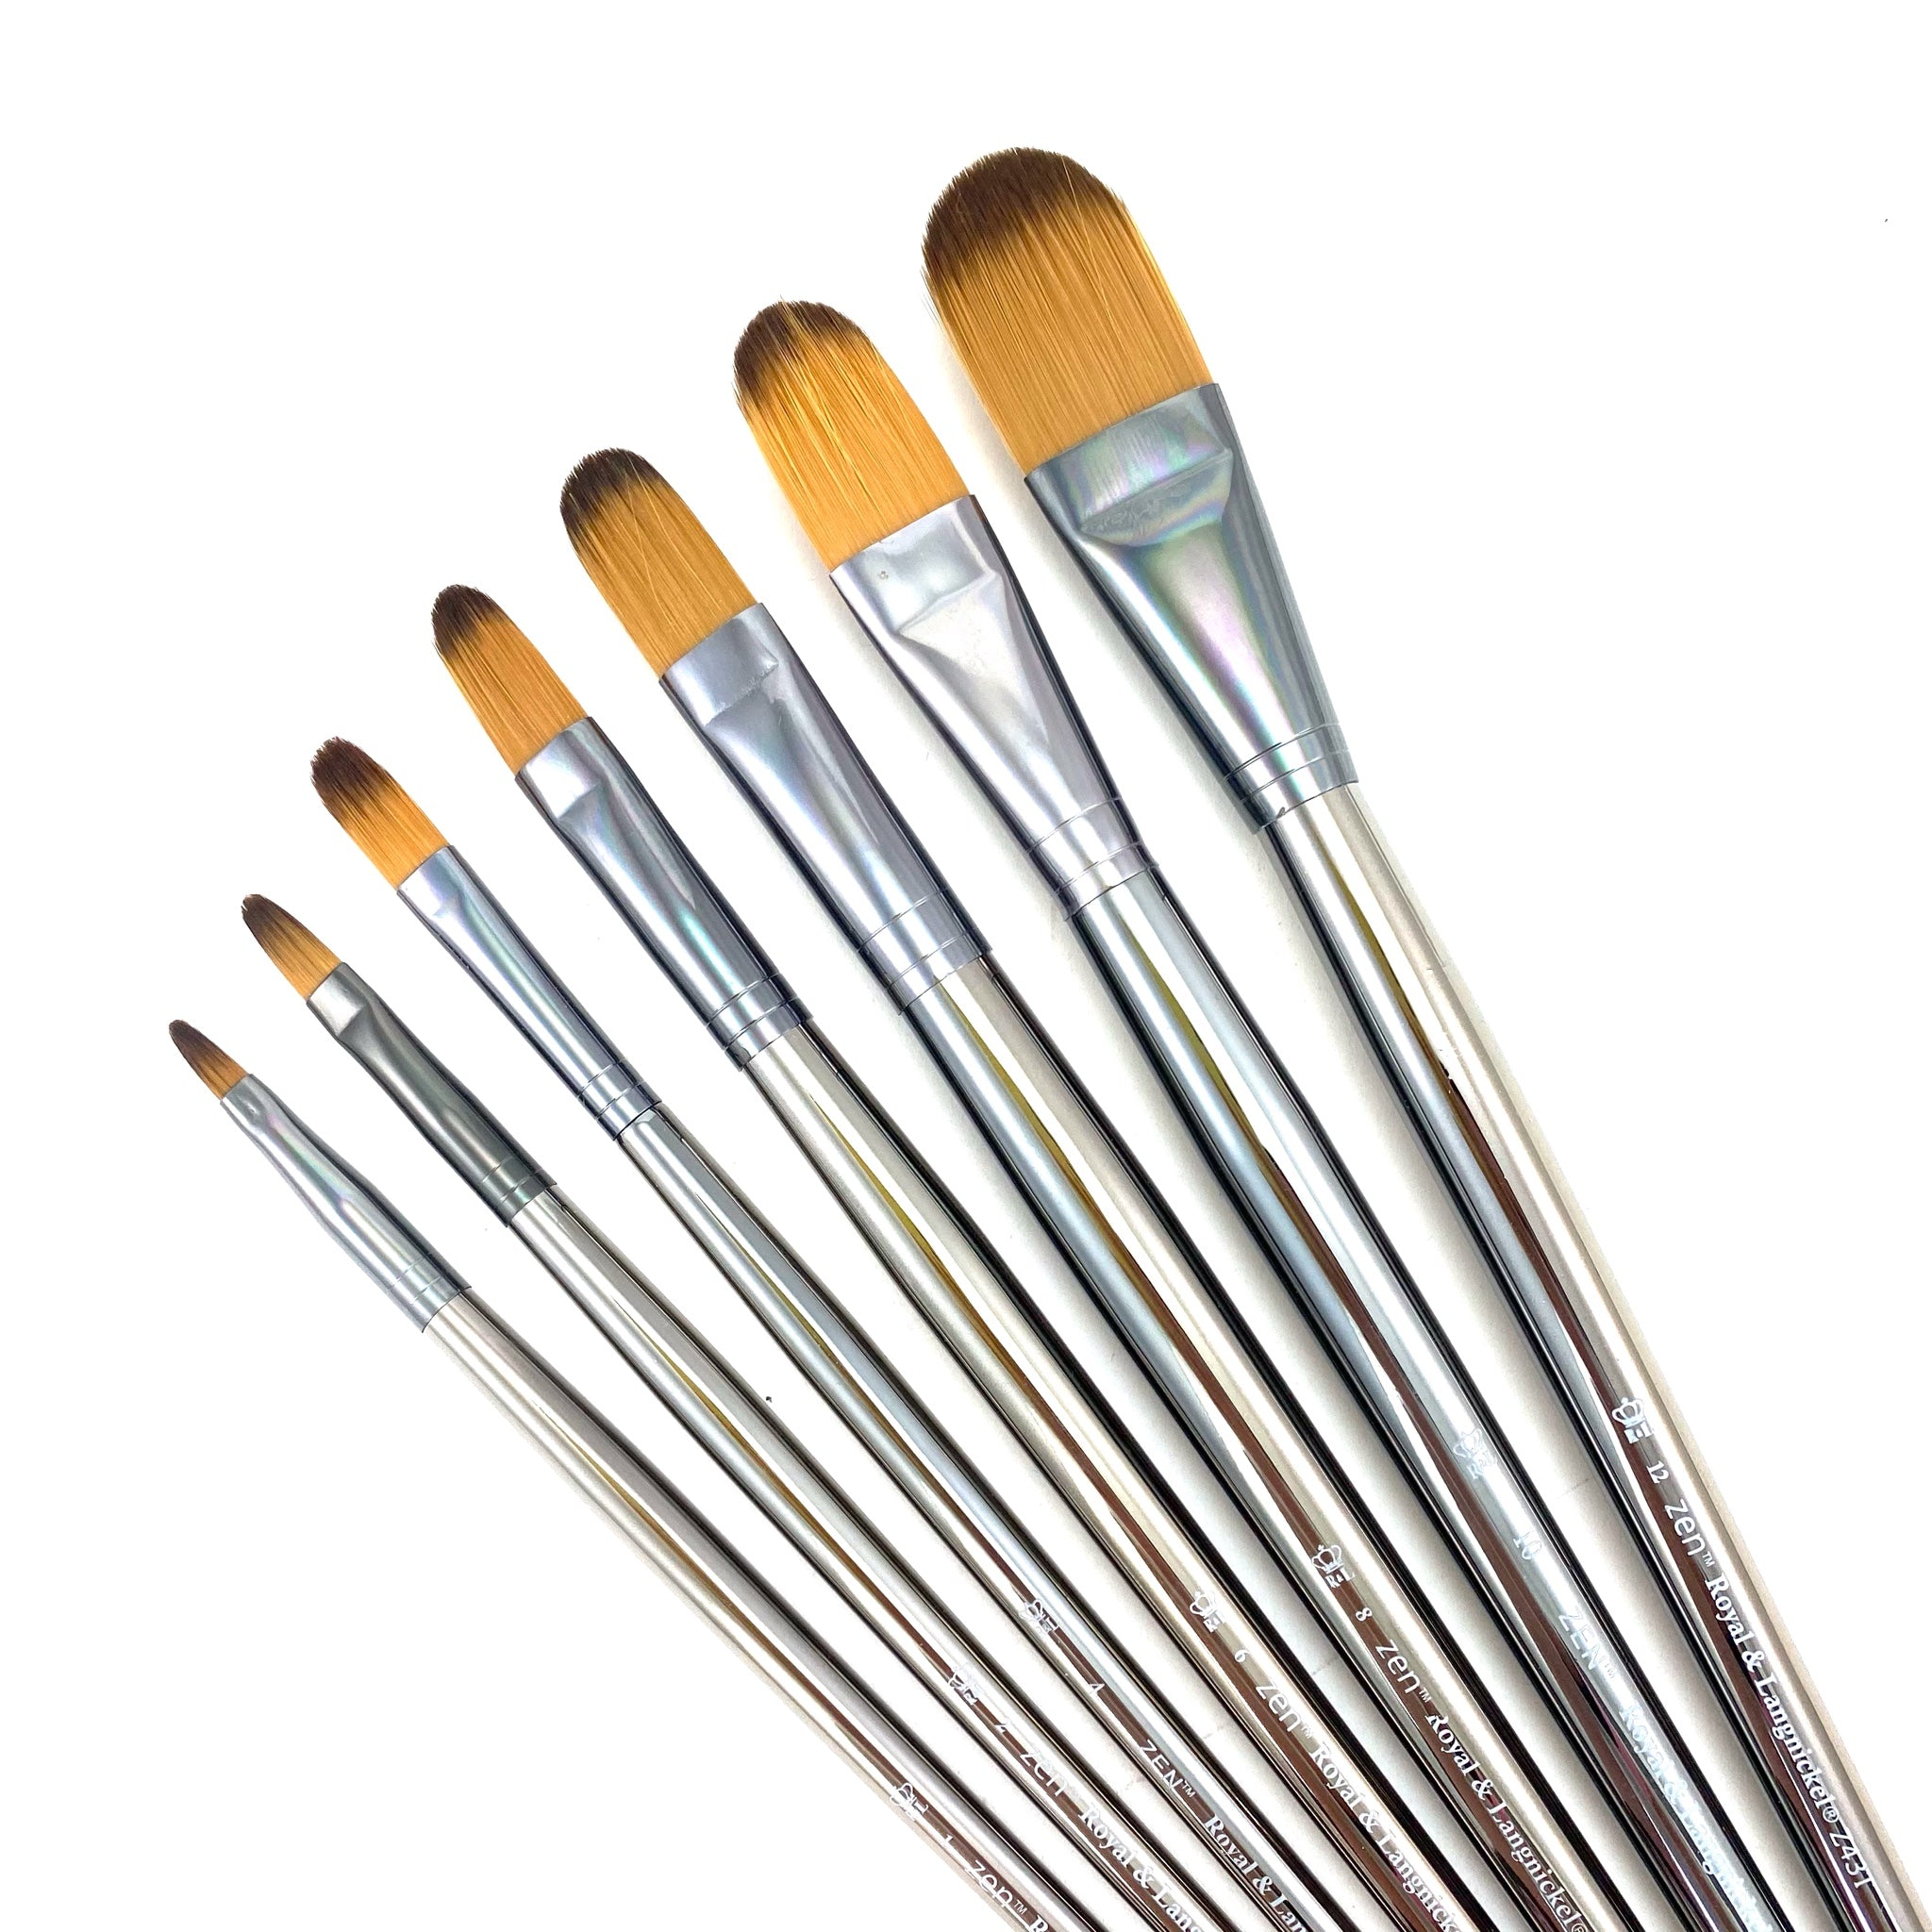 Royal & Langnickle Zen Long Handle Brushes - 43 Series - by Royal & Langnickle - K. A. Artist Shop